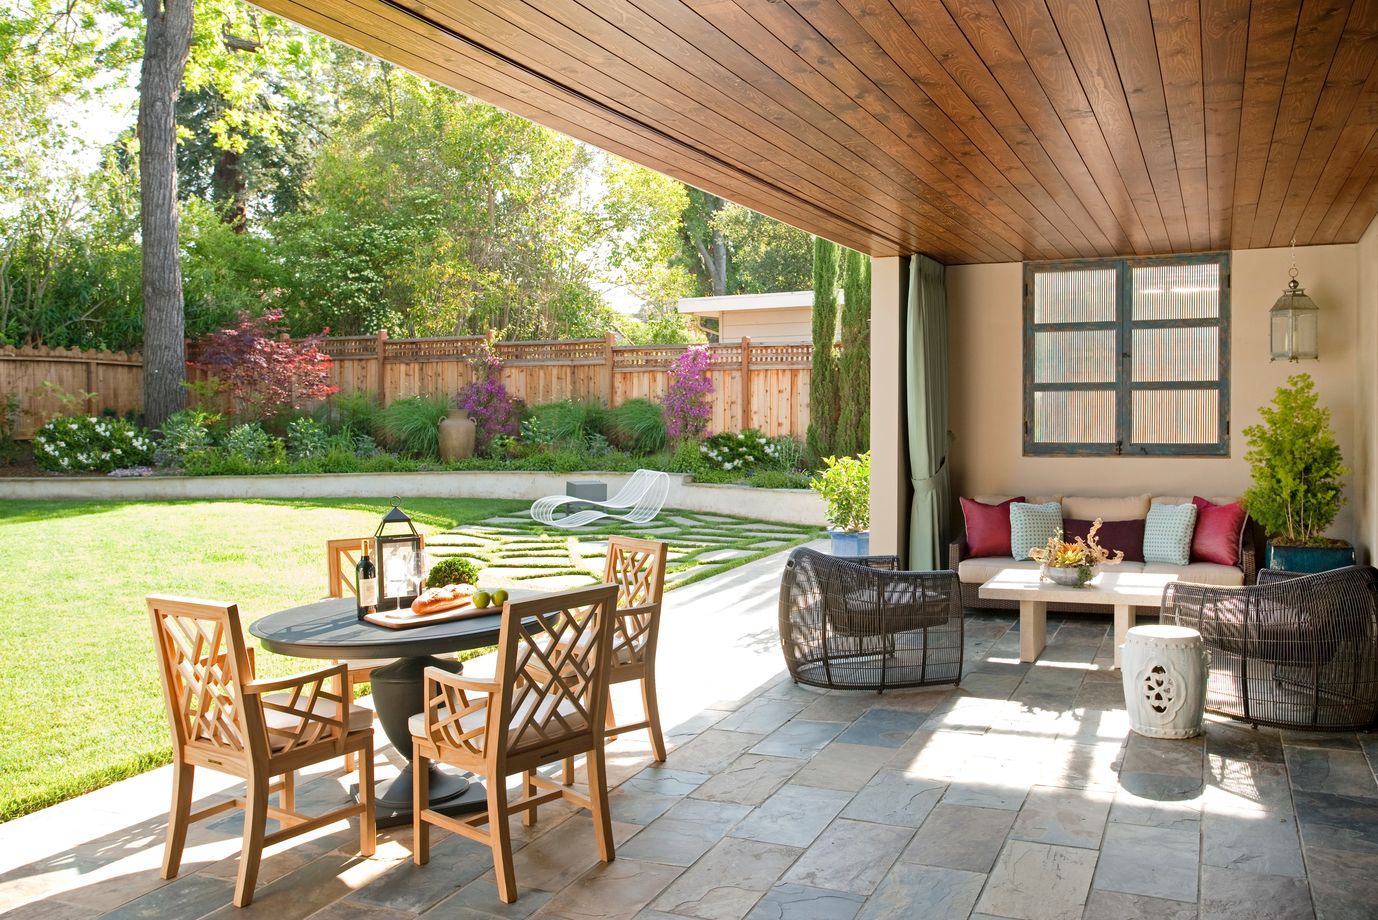 Outdoor living 8 ideas to get the most out of your space for Outdoor living space plans